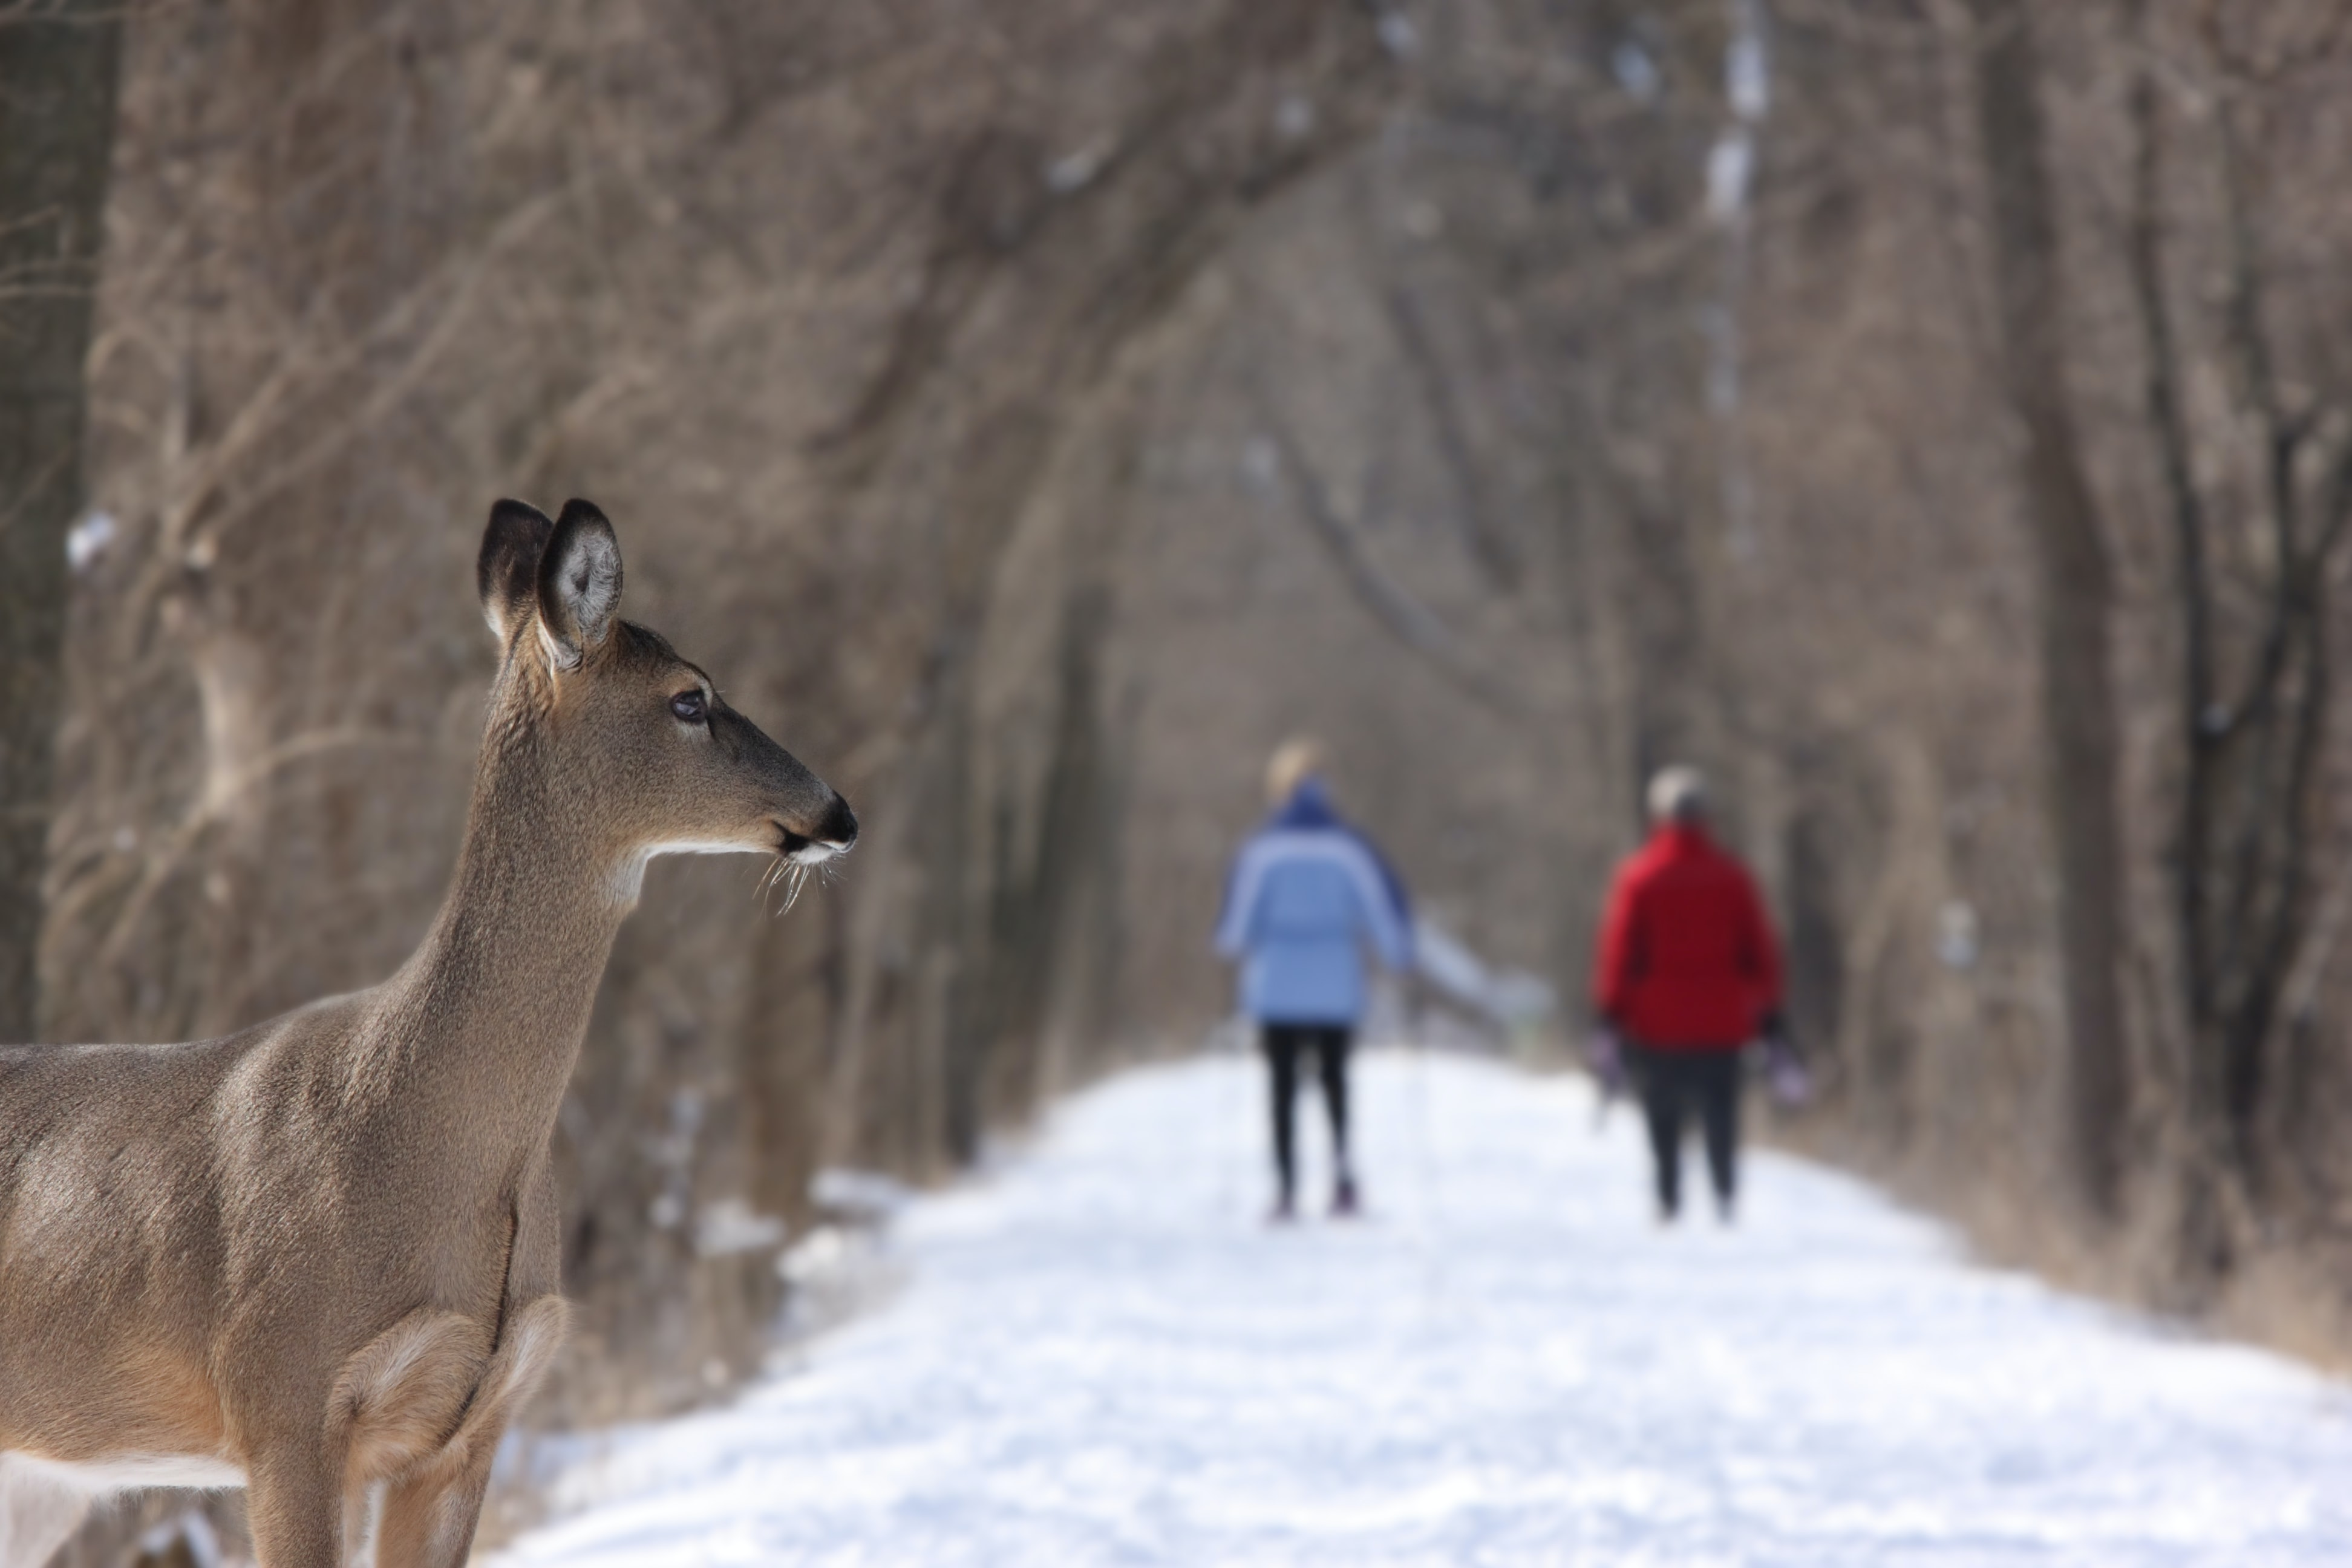 Deer standing on a snow covered path in the forest with two people in the background